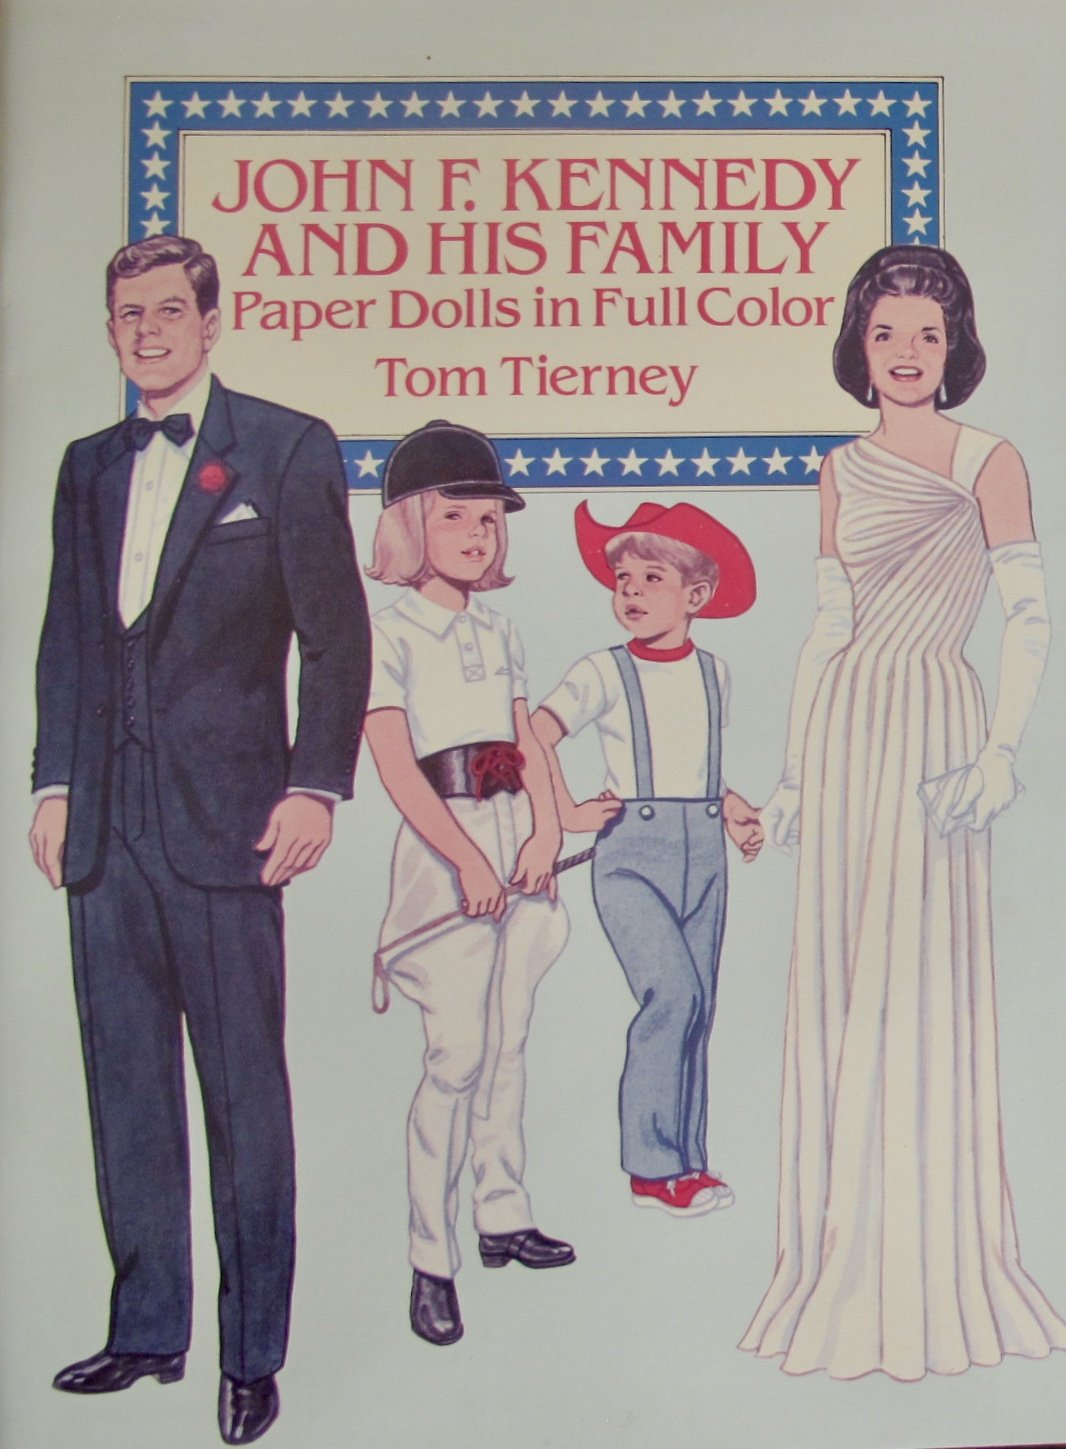 Tom Tierney JOHN F. KENNEDY and His FAMILY PAPER DOLLS Book (UNCUT) in Full COLOR w 6 Card Stock DOLLS and 34 Card Stock COSTUMES (1990)